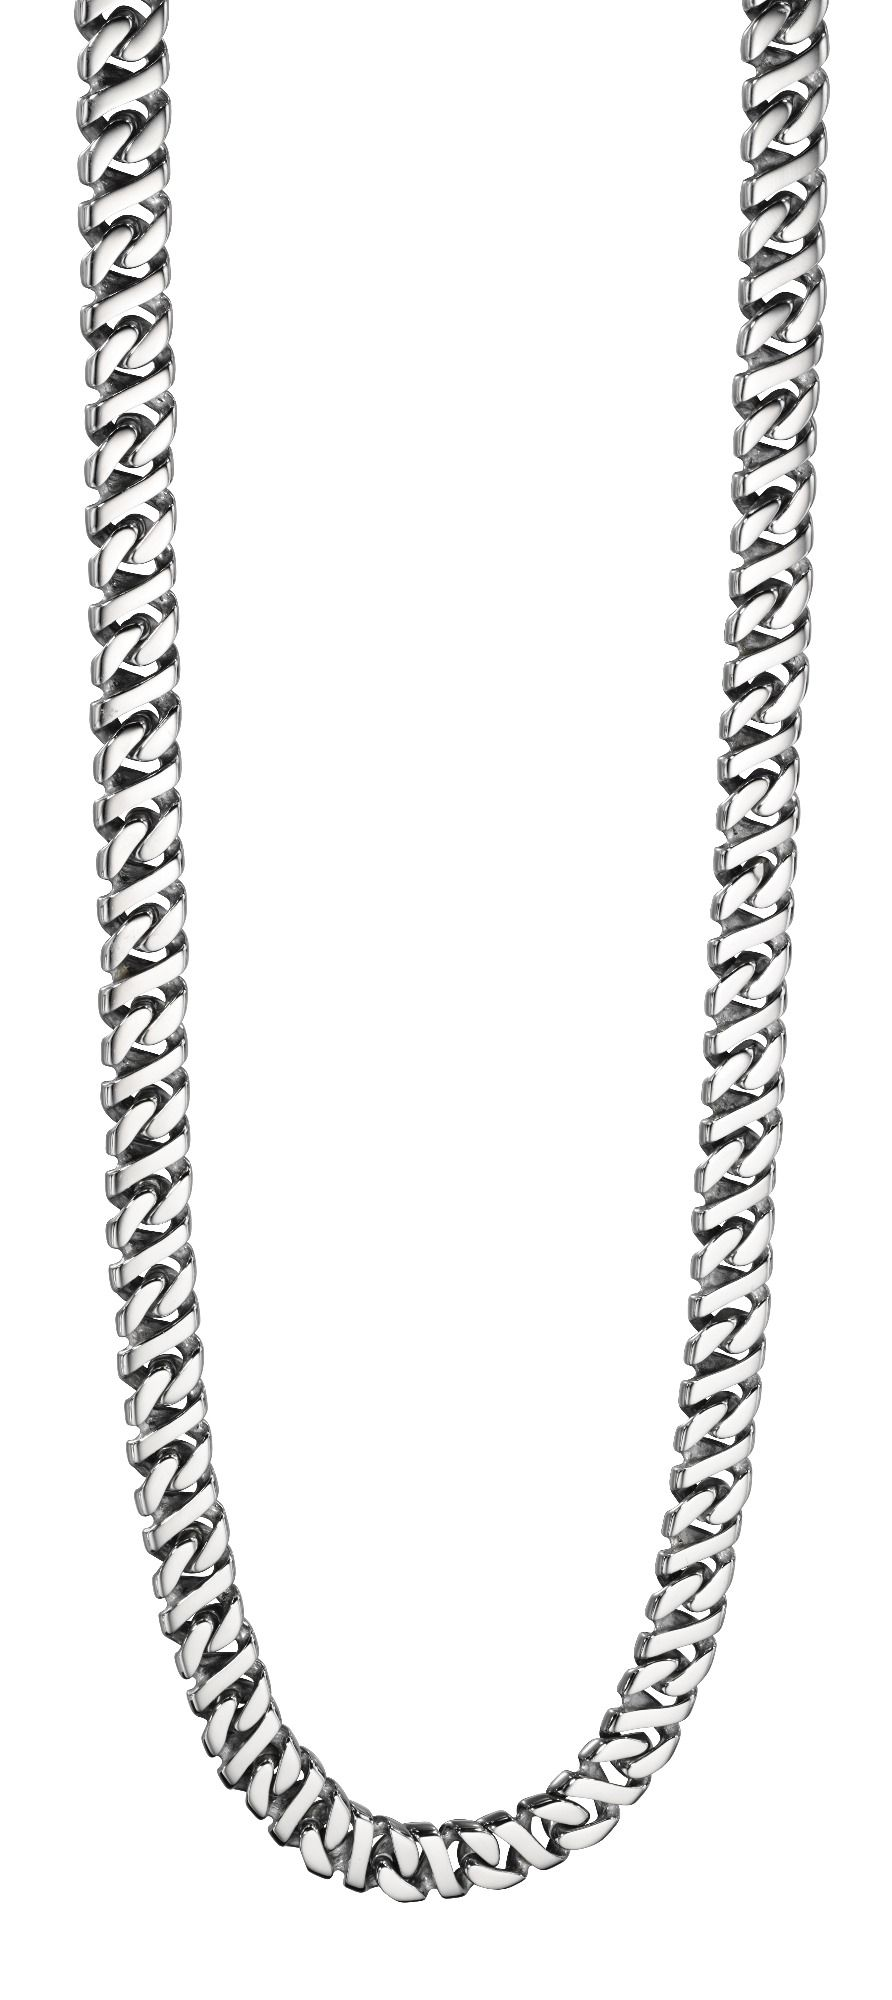 MEN\'S HEAVY STAINLESS STEEL CHAIN 60CM